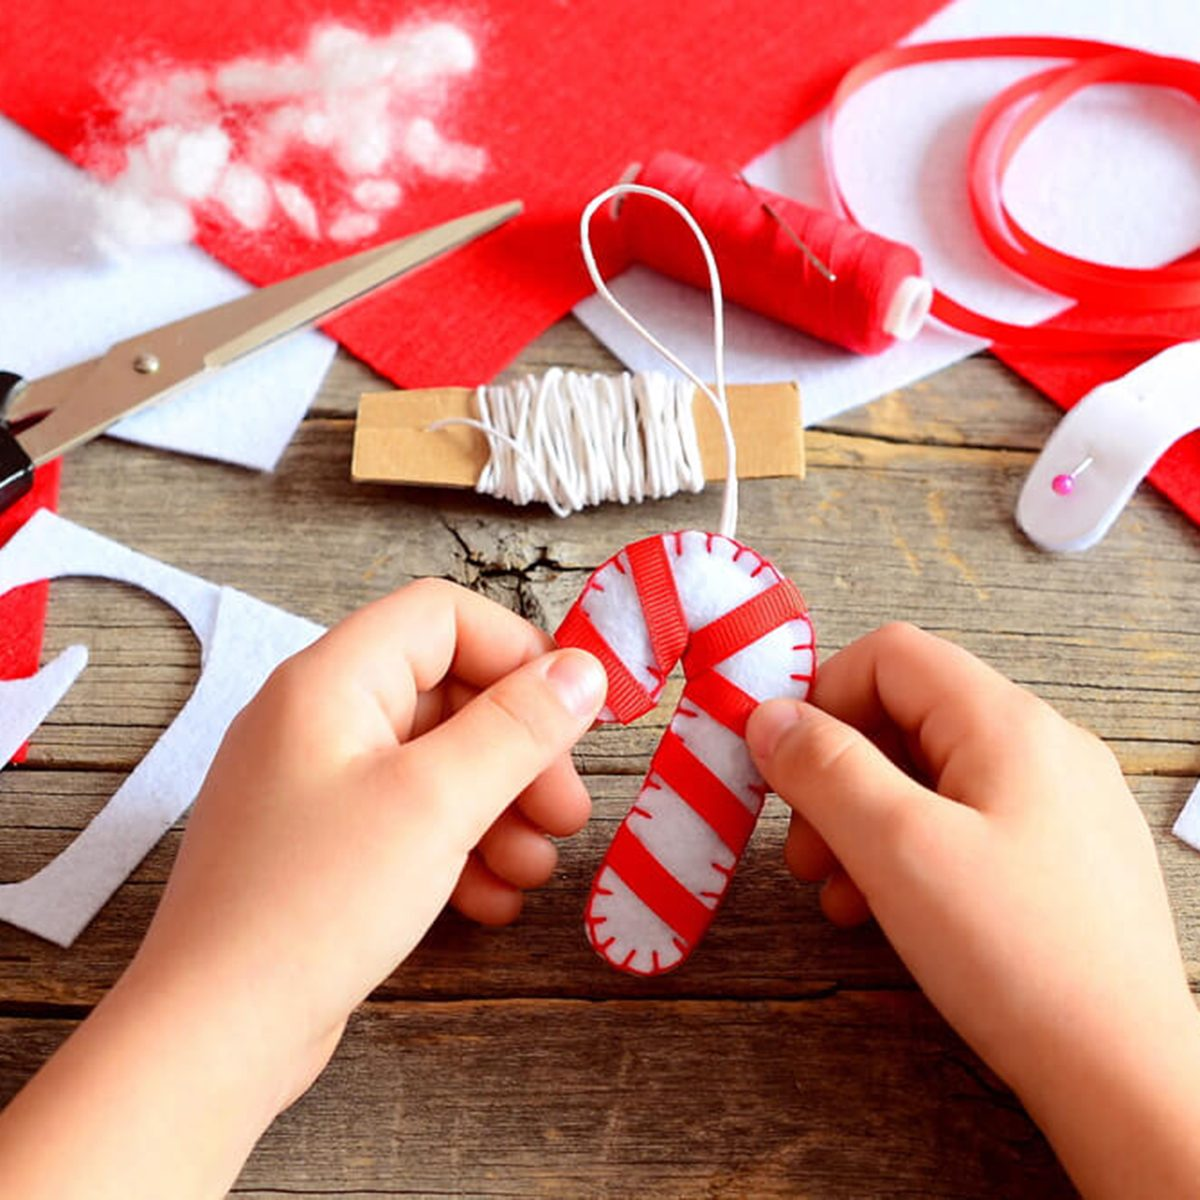 Creating a fabric candy cane